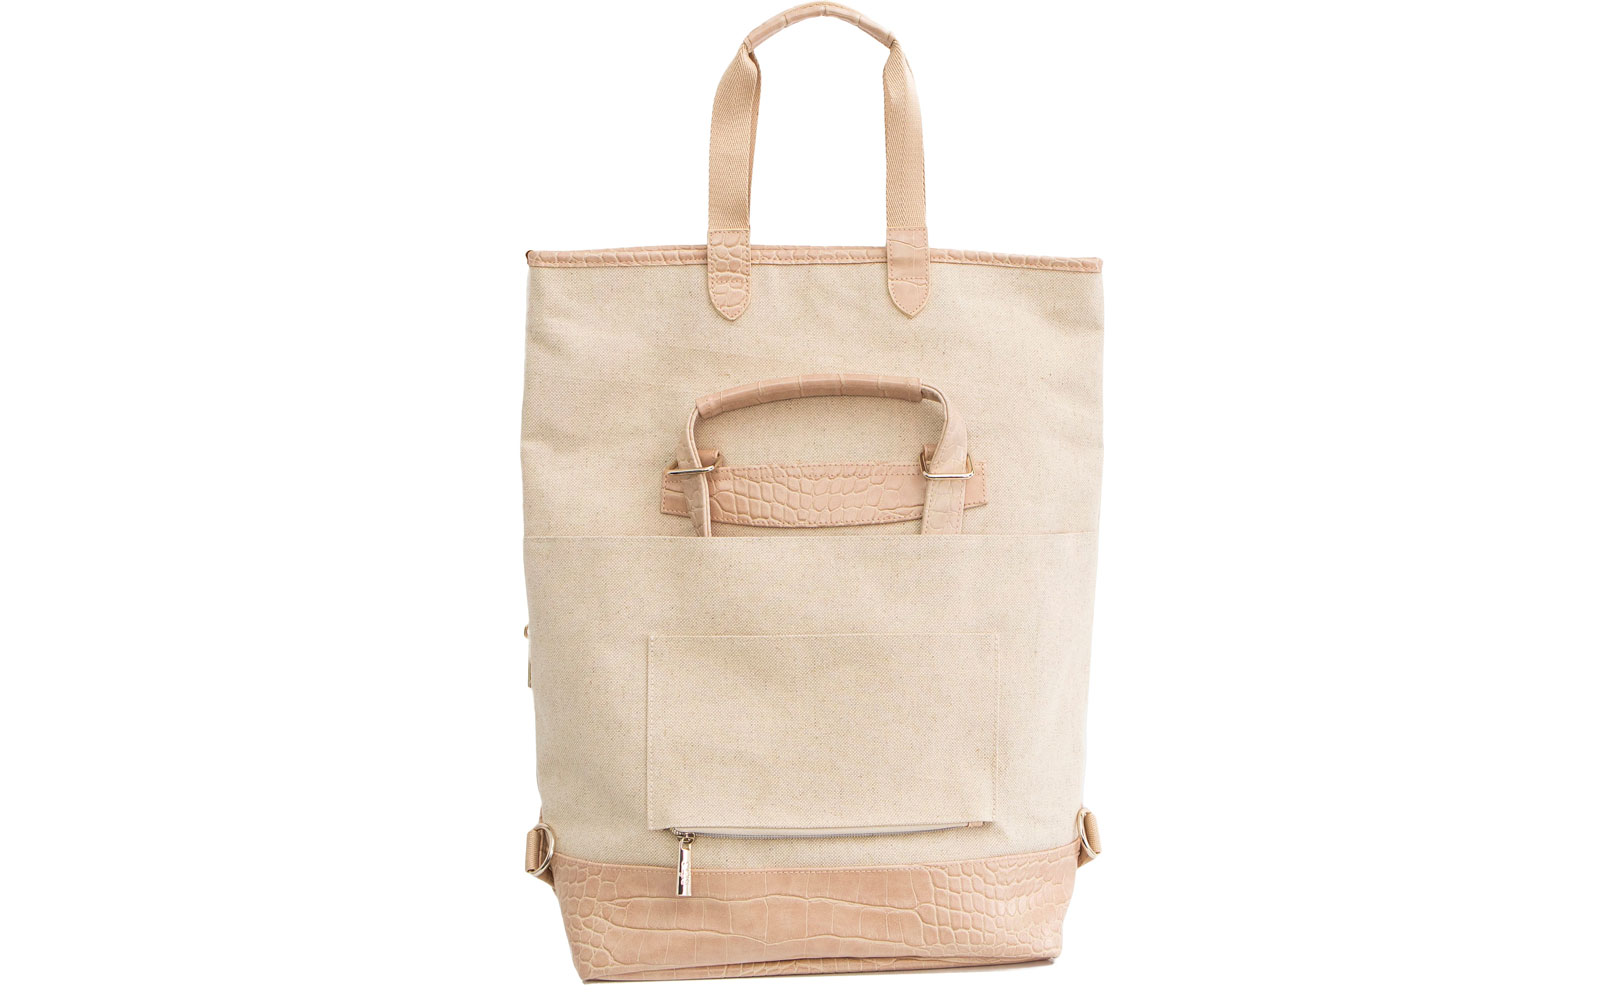 Back of Tan Convertible Tote and Backpack